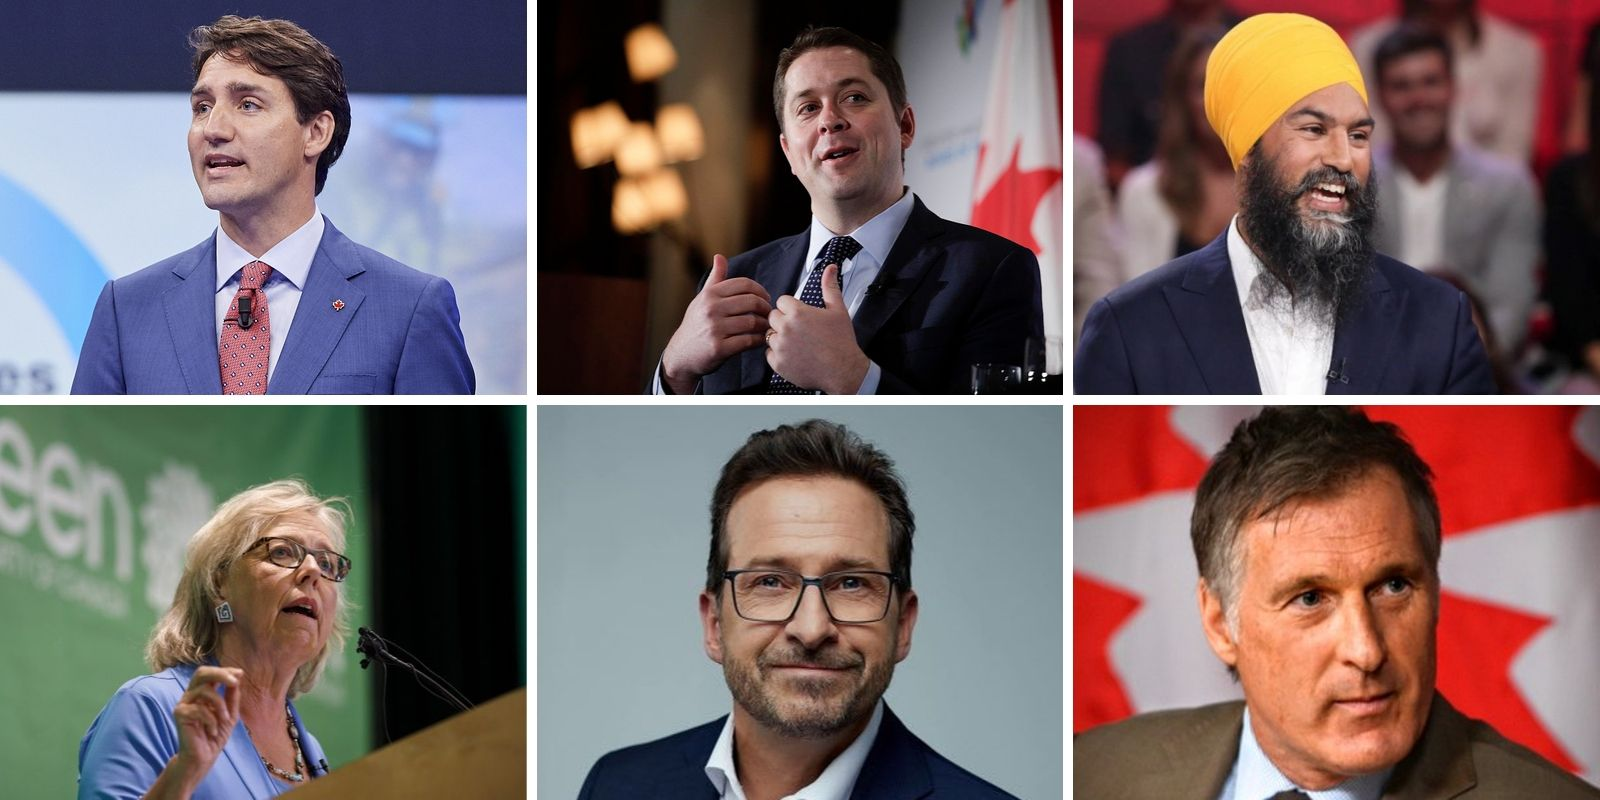 WATCH: All the Canadian leaders running in the 2019 election explained